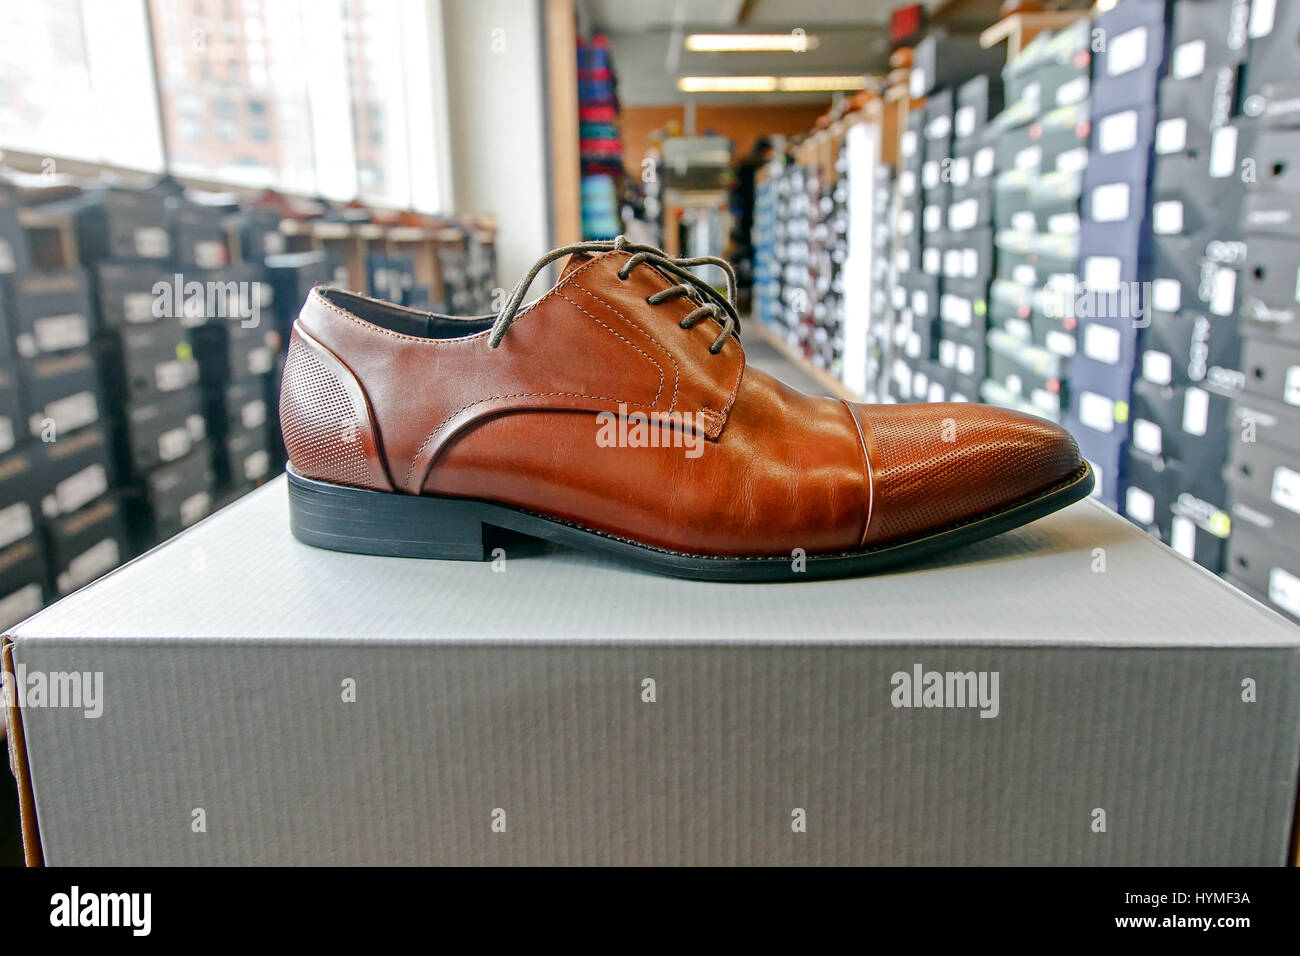 Mens dress shoe in a shoe store with stacks of boxes in the background. - Stock Image